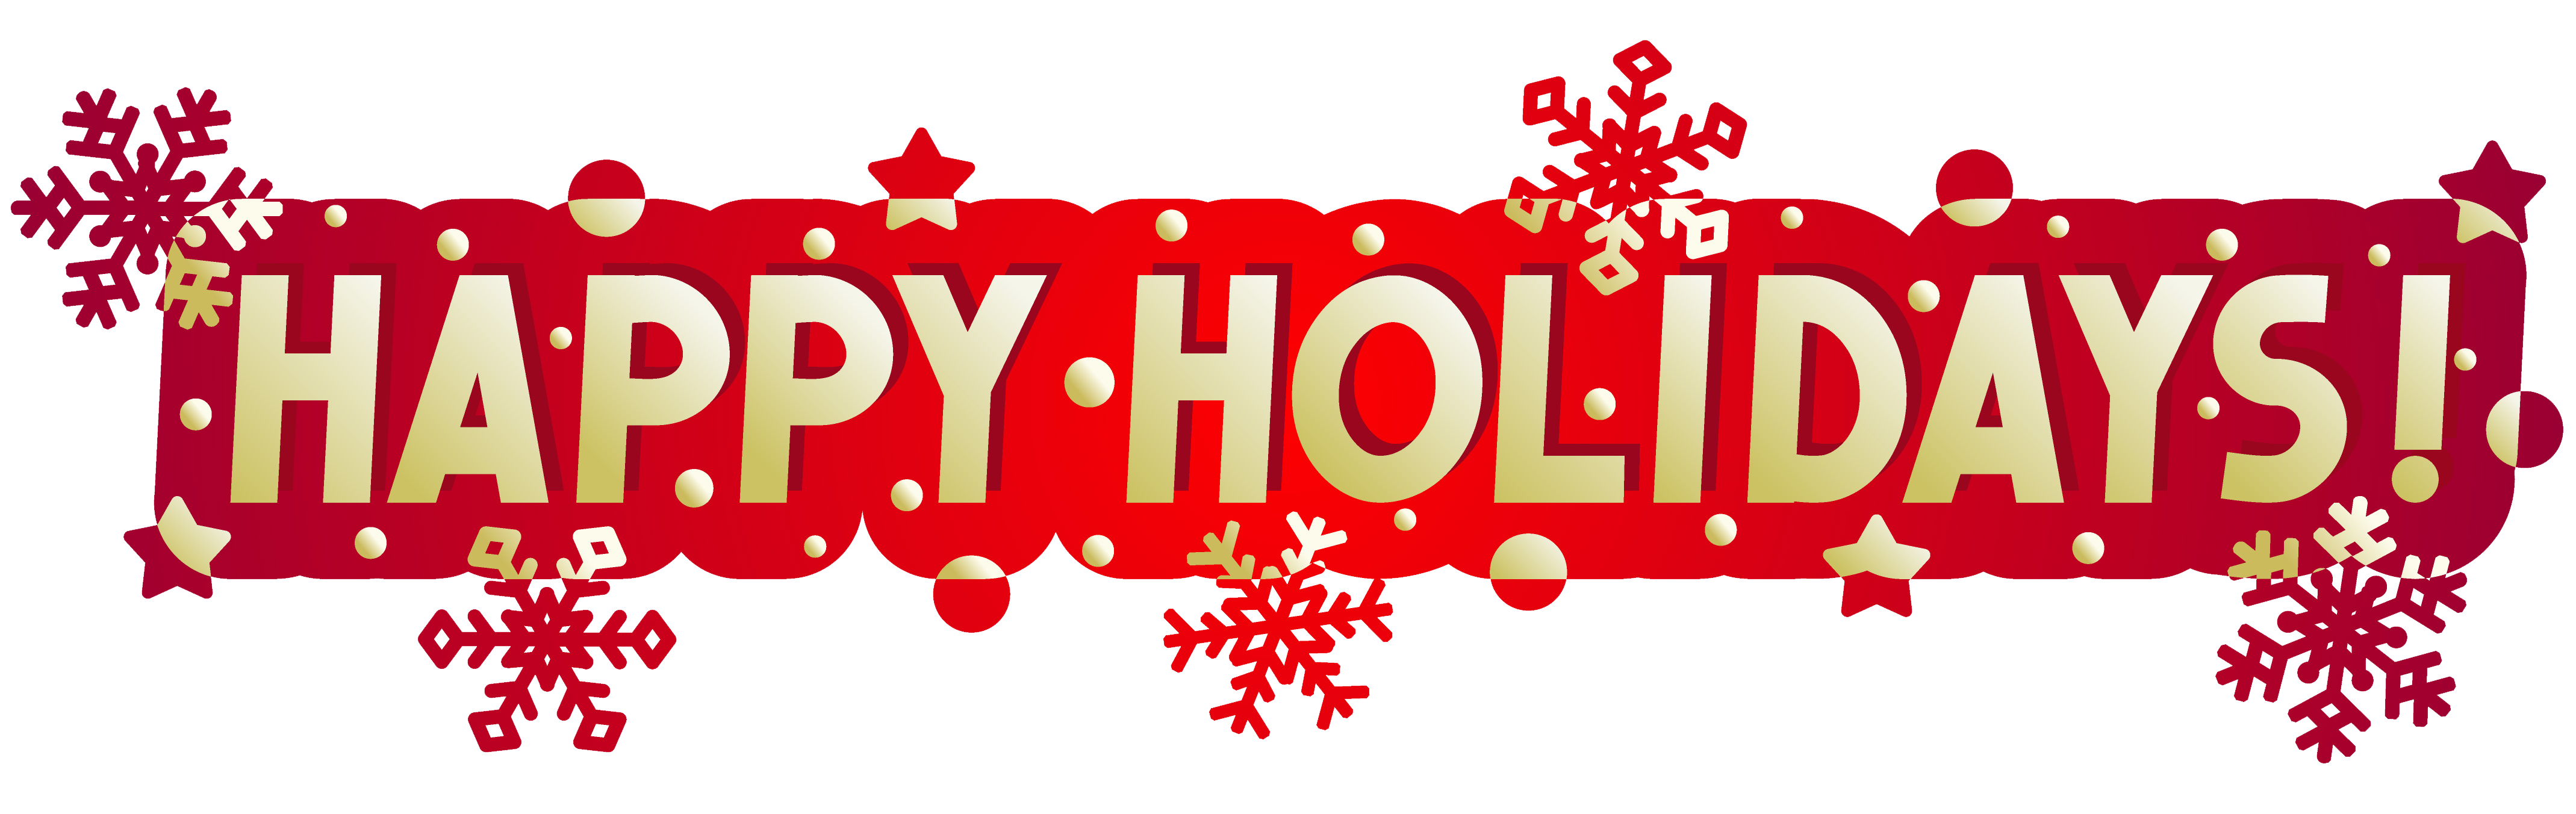 Holydays clipart transparent Holidays Advertisement Transparent All PNG